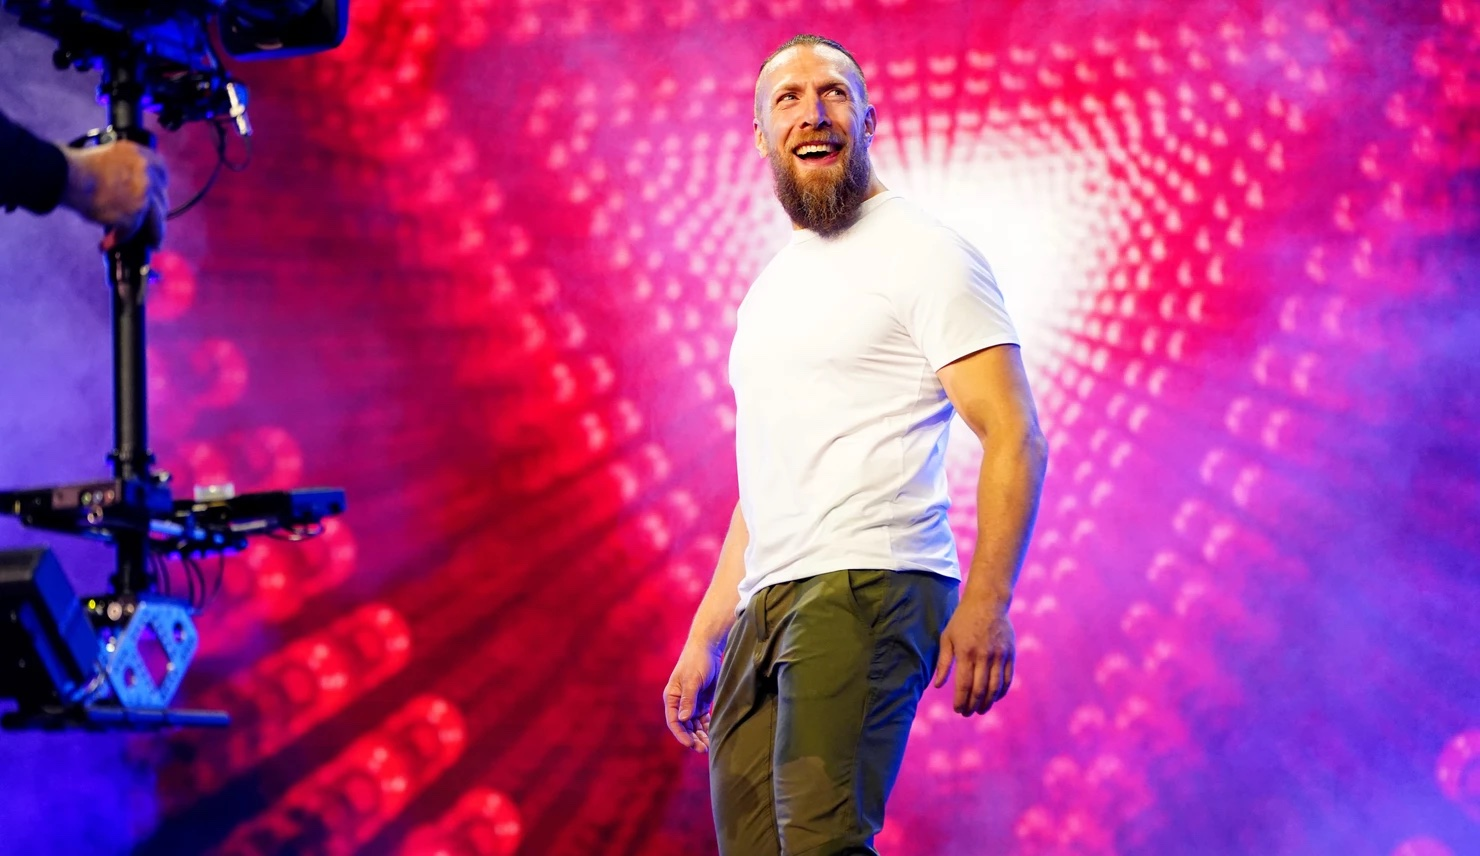 PTW Wrestling Podcast: Bryan Danielson at AEW All Out